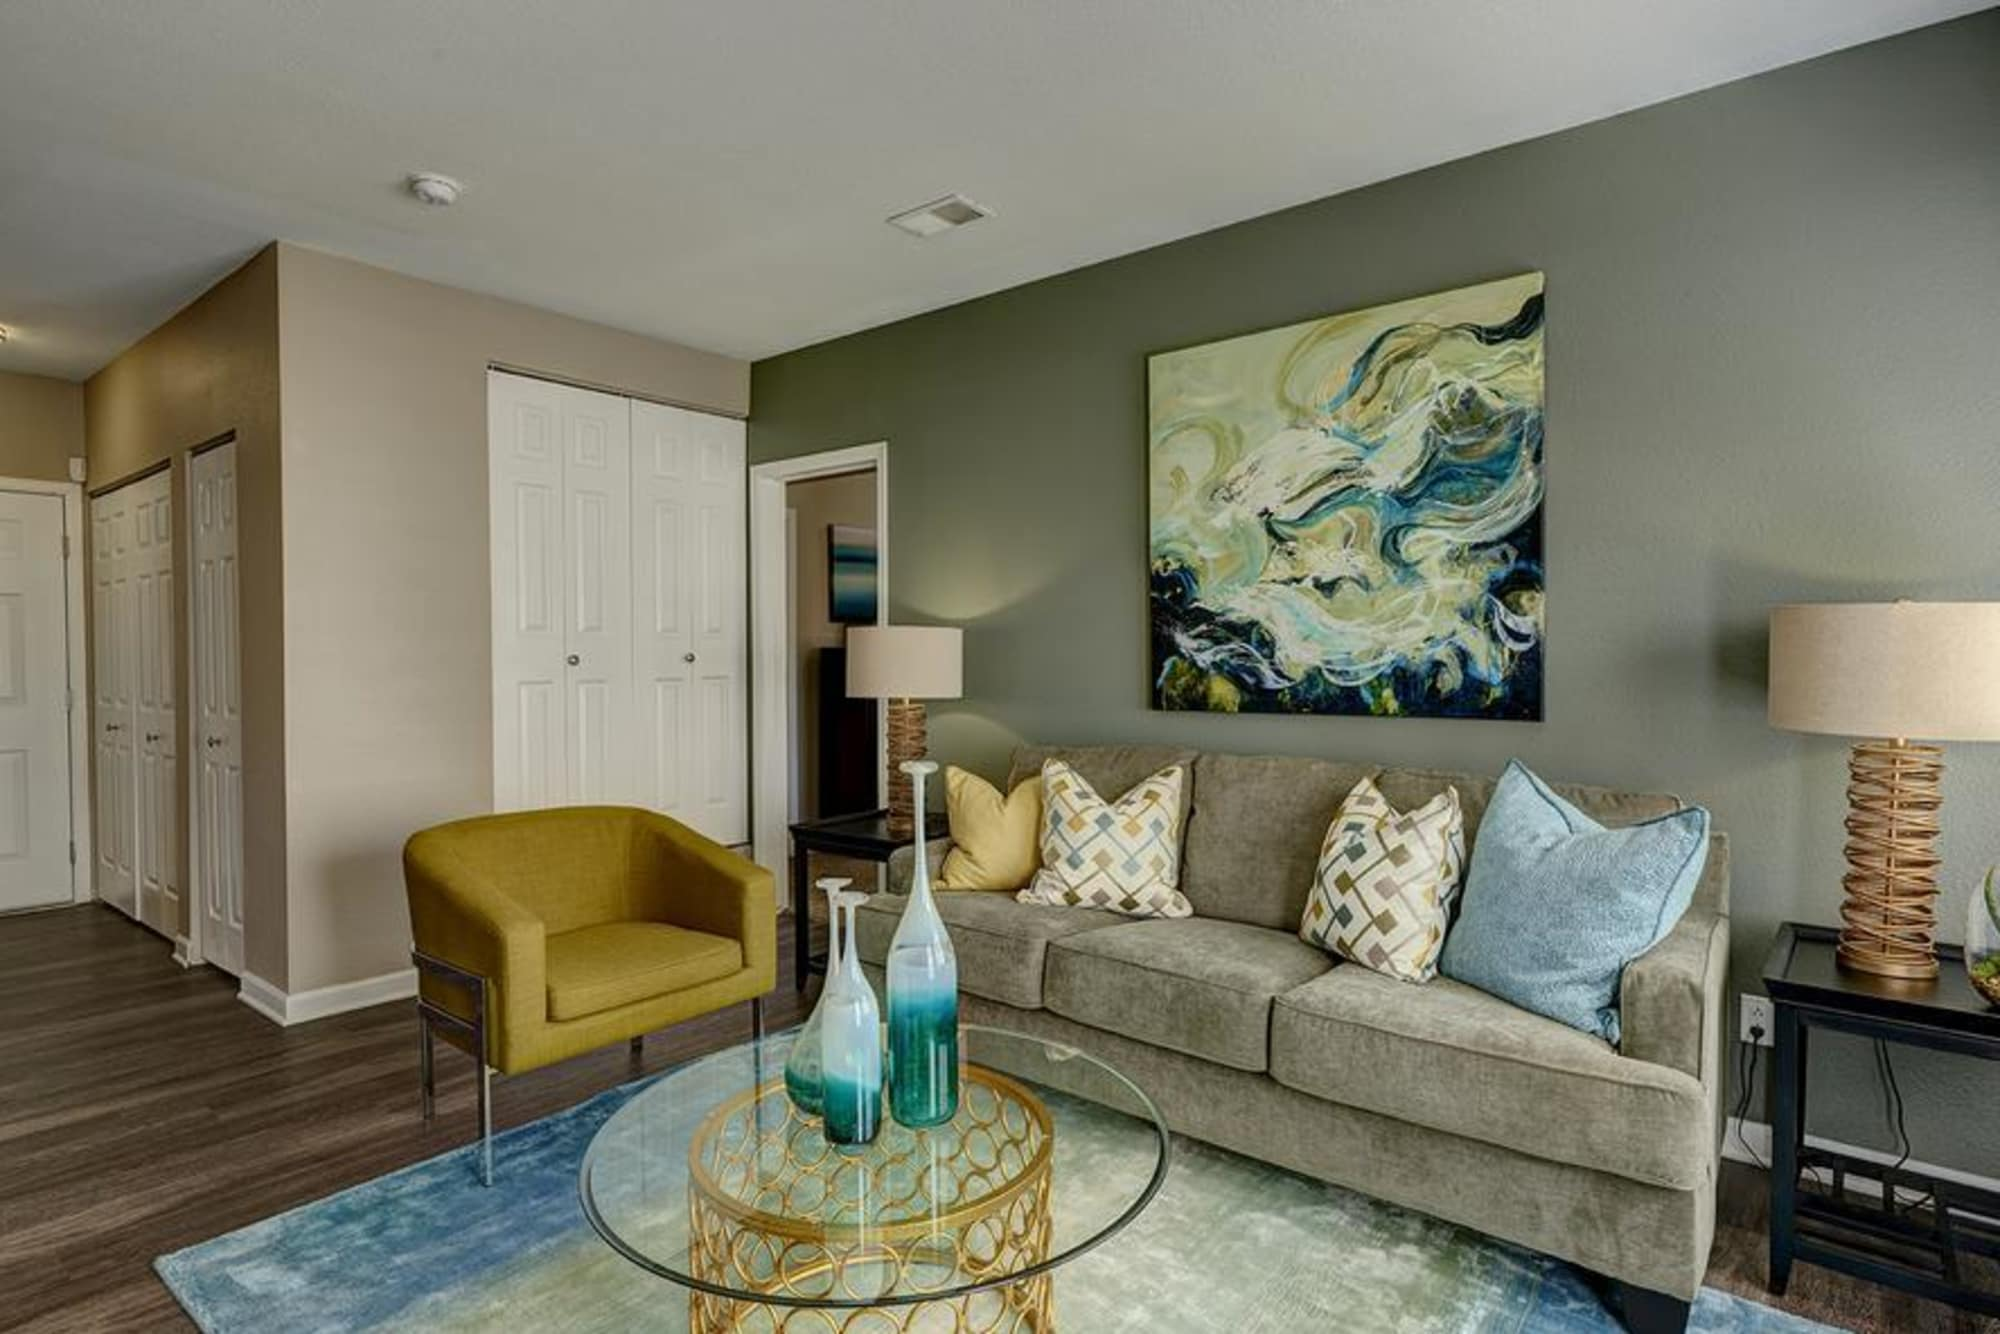 Furnished Living Room in our floor plans at Villas at Homestead Apartments